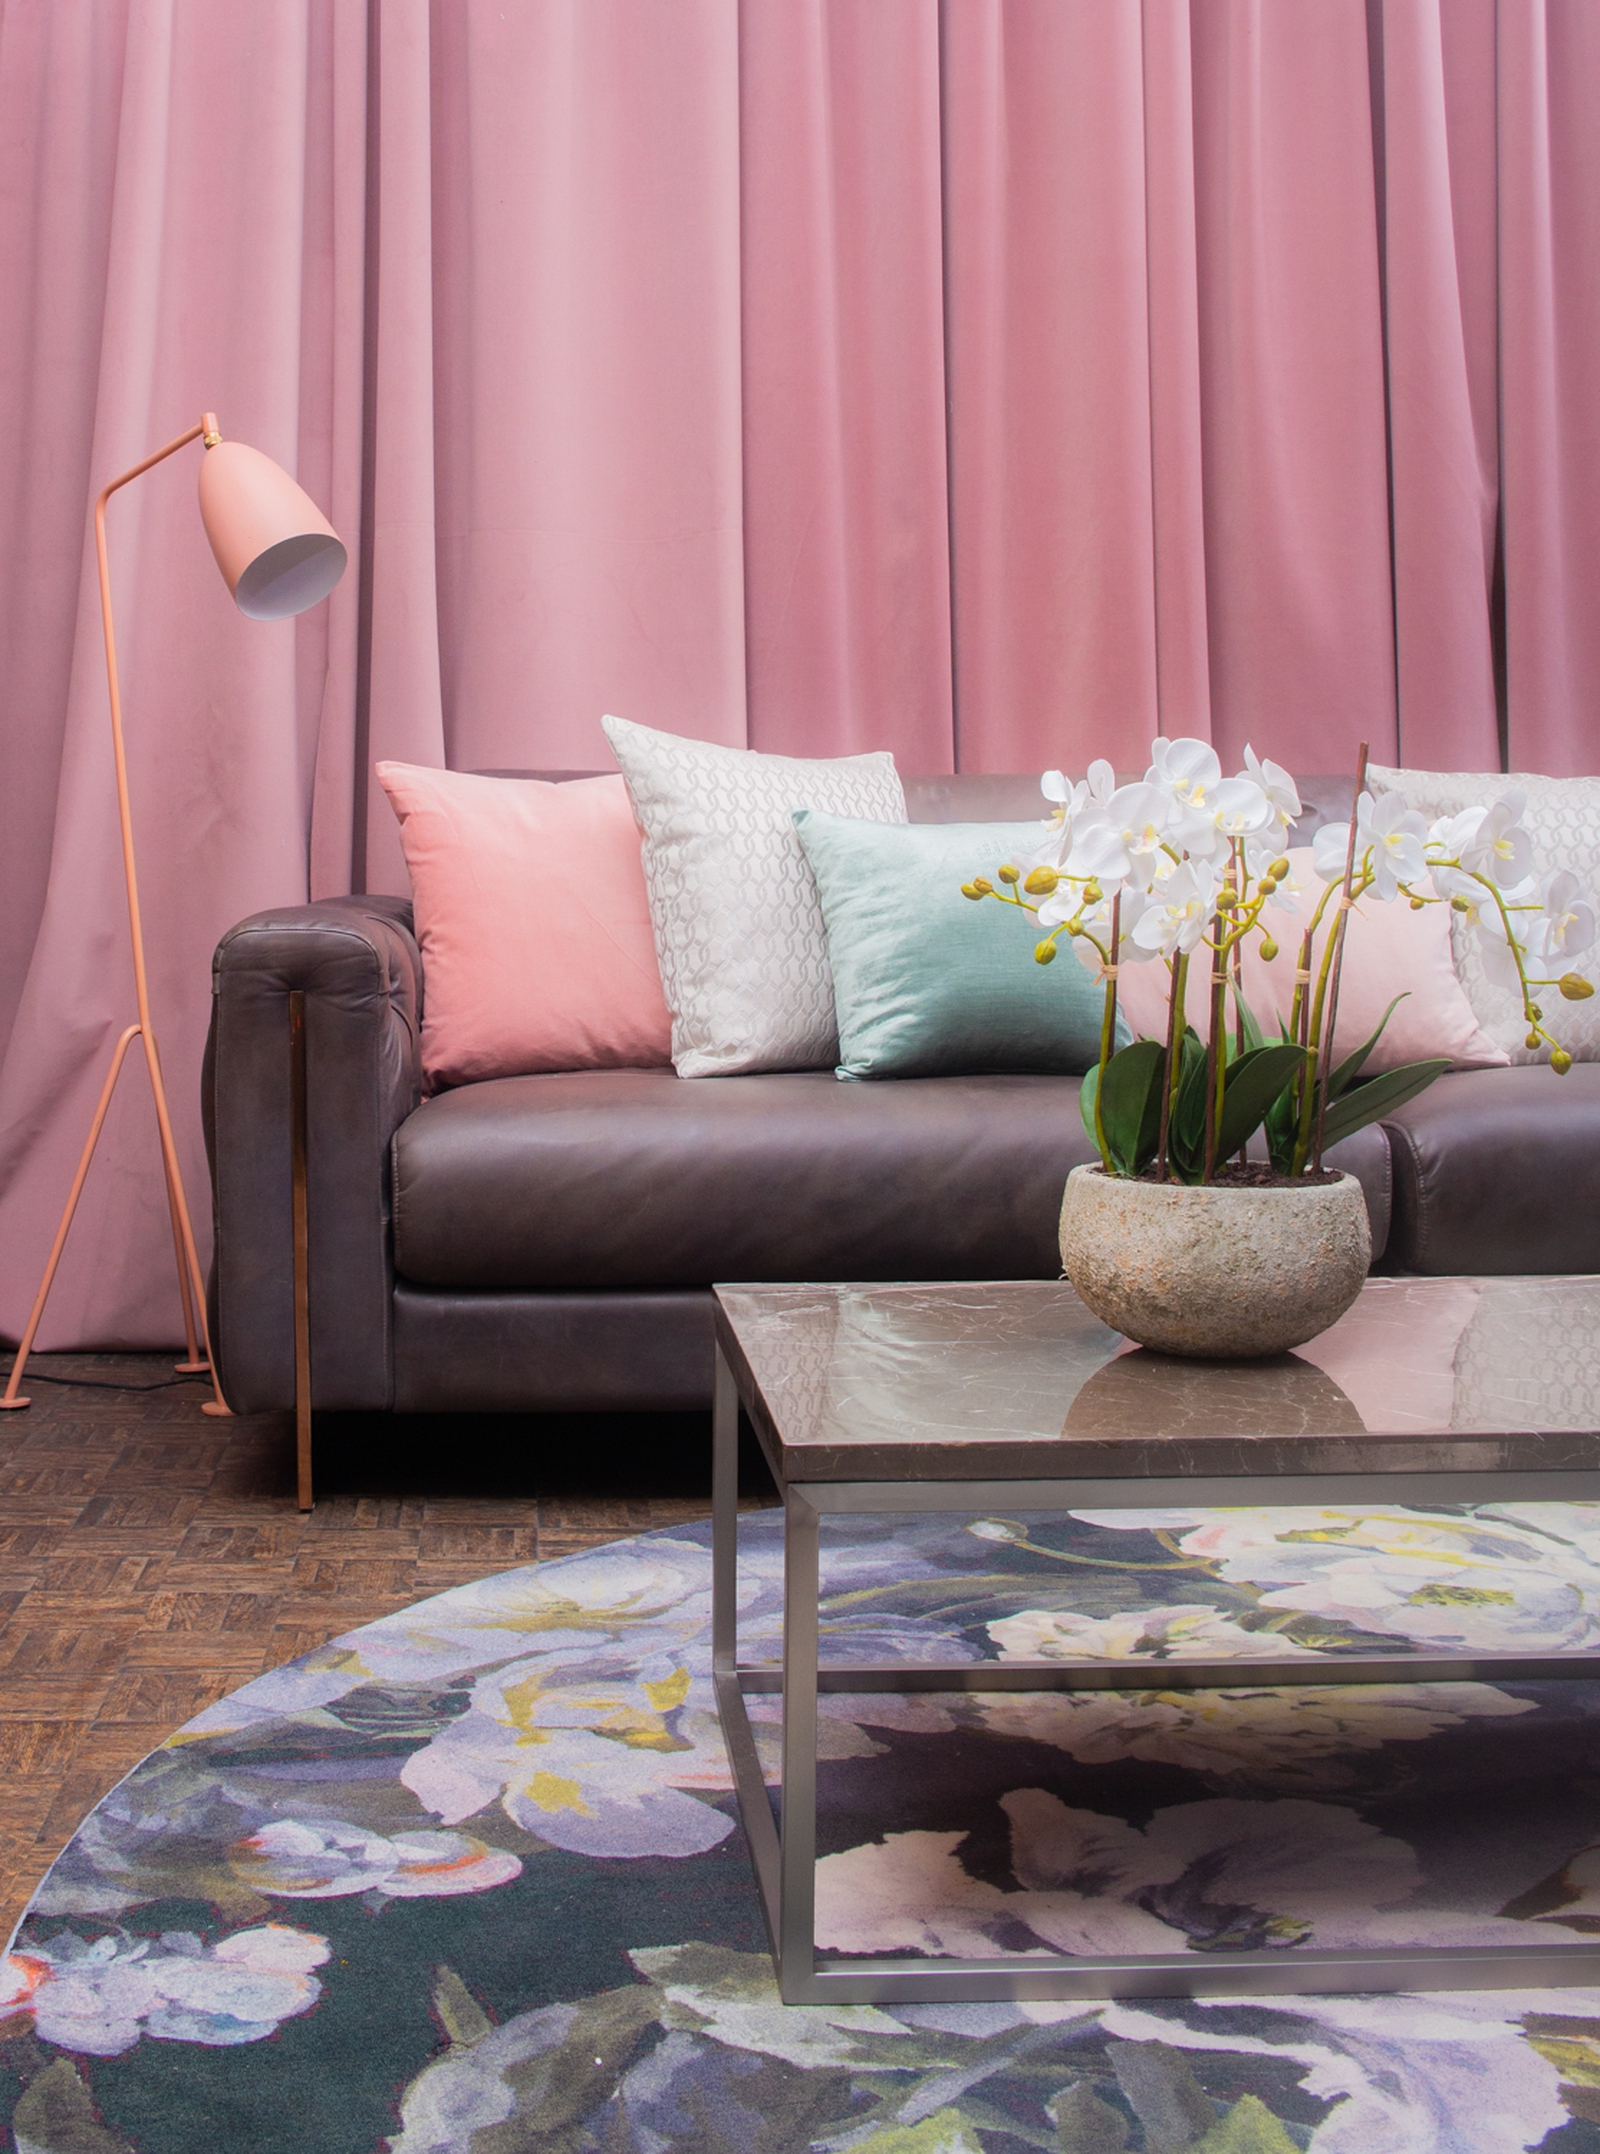 Image - Italian Glamour featured blush pink with 70s inspired gold lighting